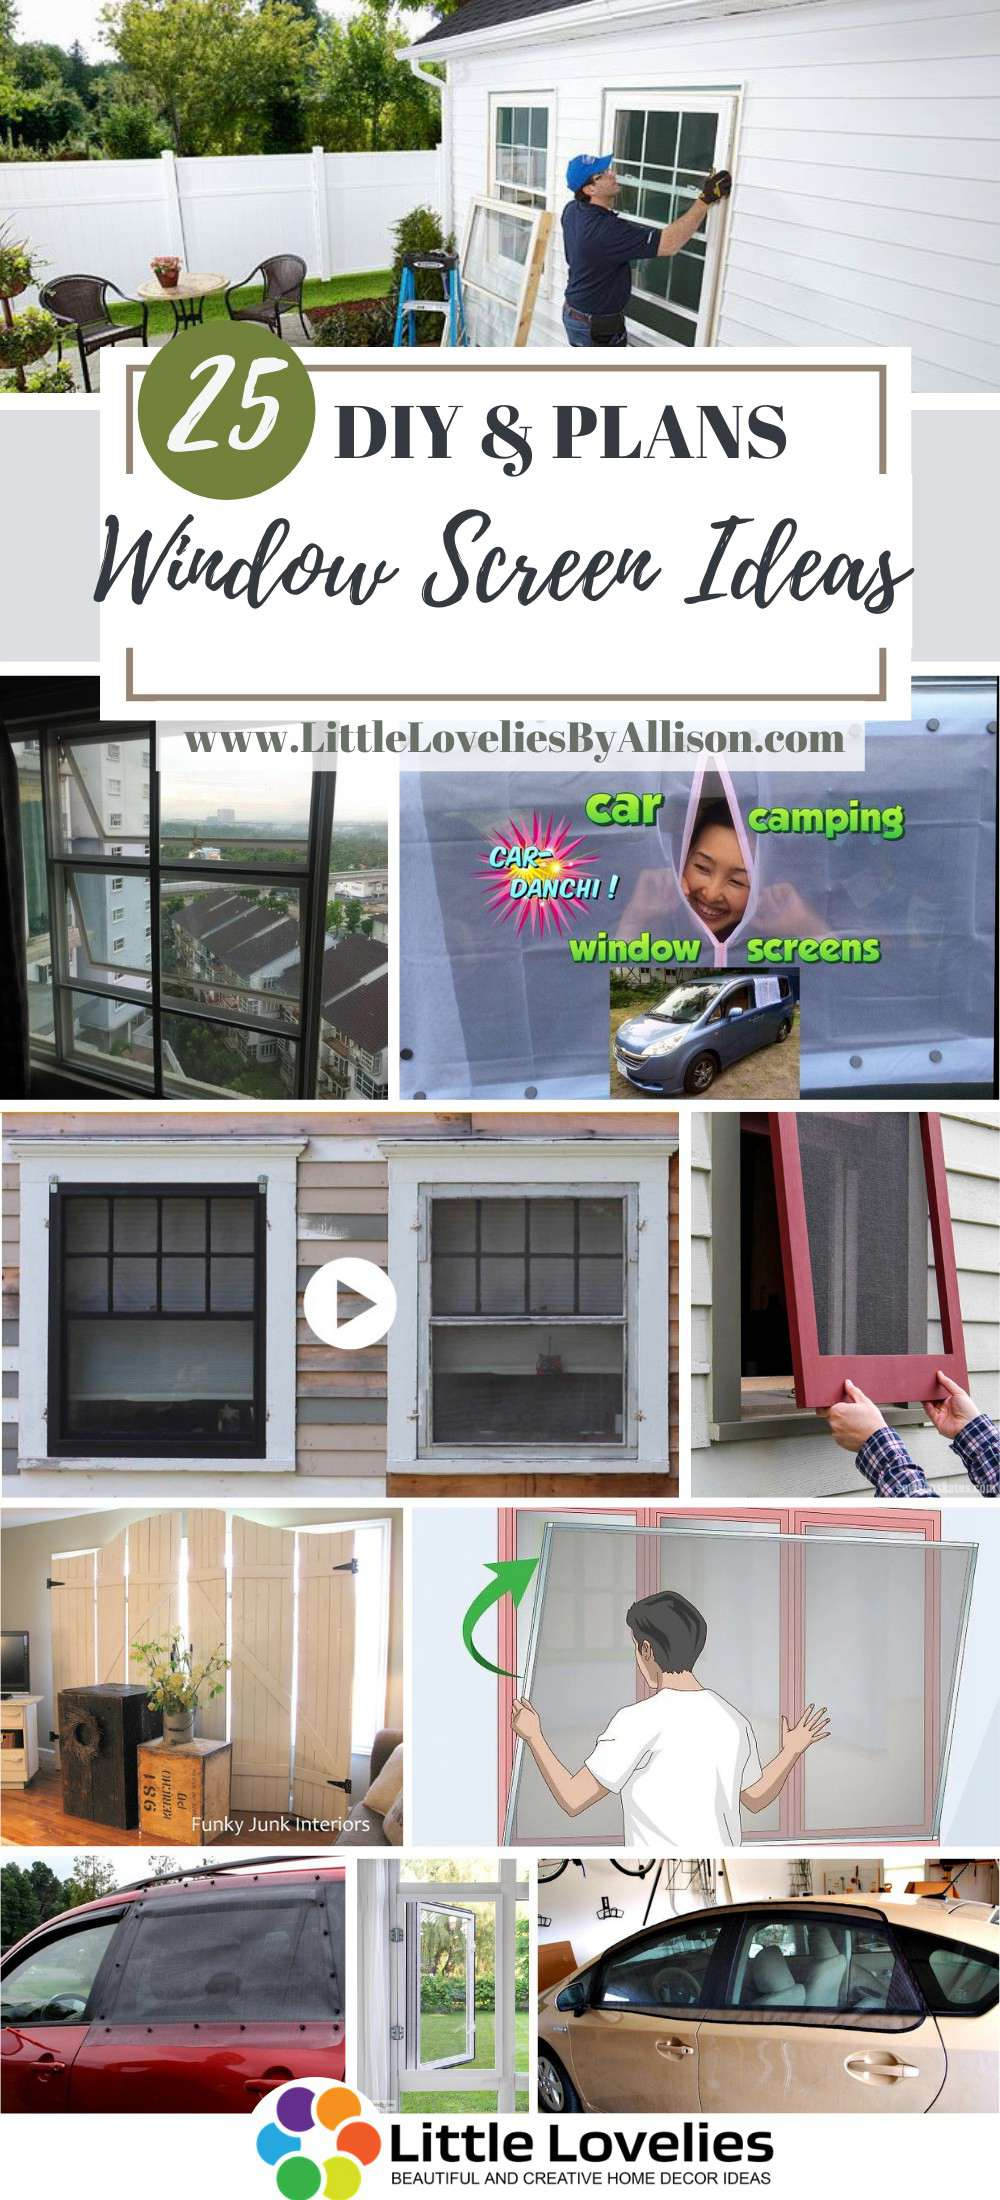 How-to-Build-a-Window-Screen